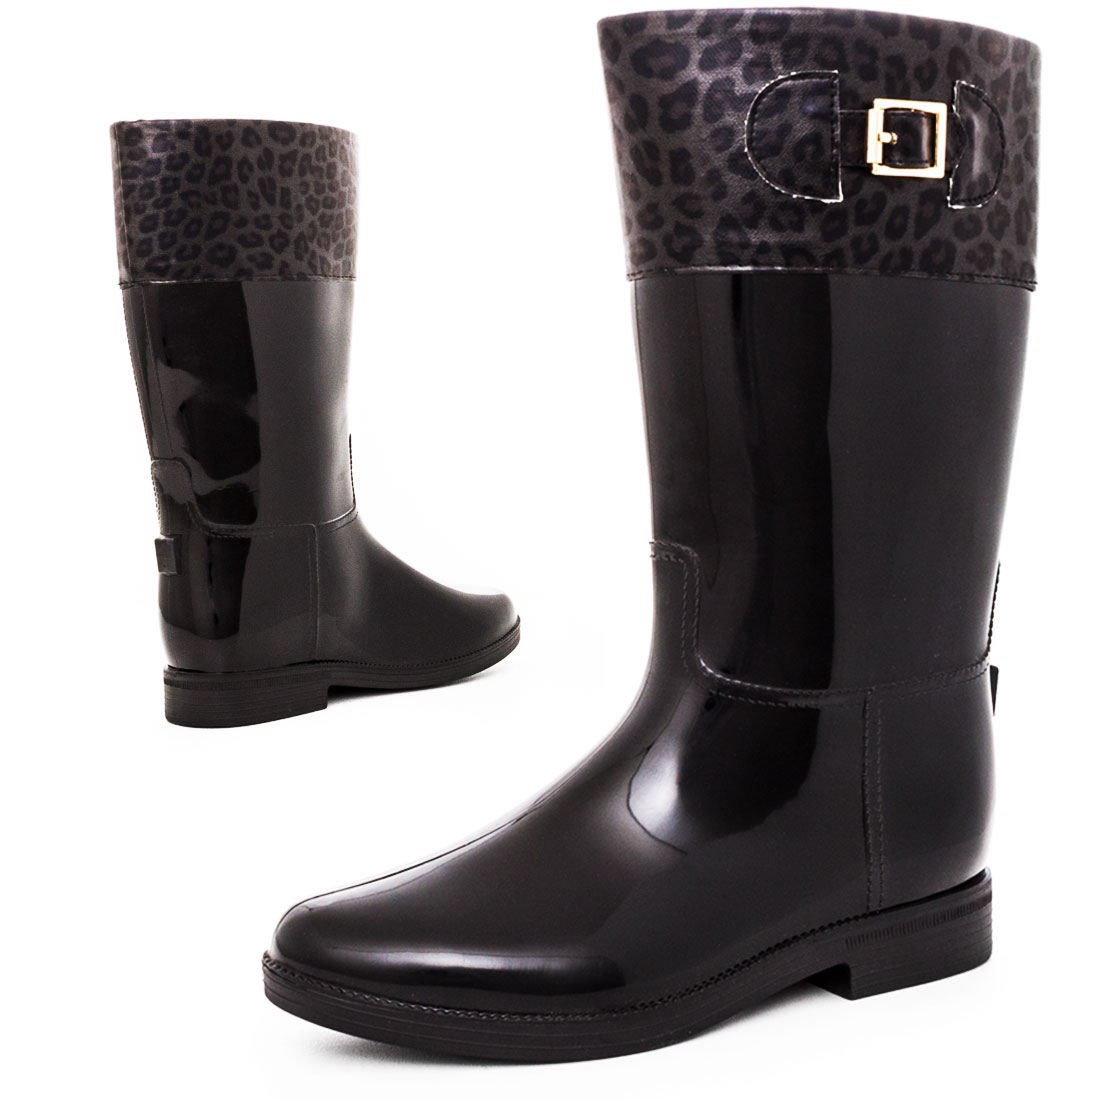 neu damen stiefel schlupf boots regen gummistiefel schuhe gr 36 37 38 39 40 41 ebay. Black Bedroom Furniture Sets. Home Design Ideas